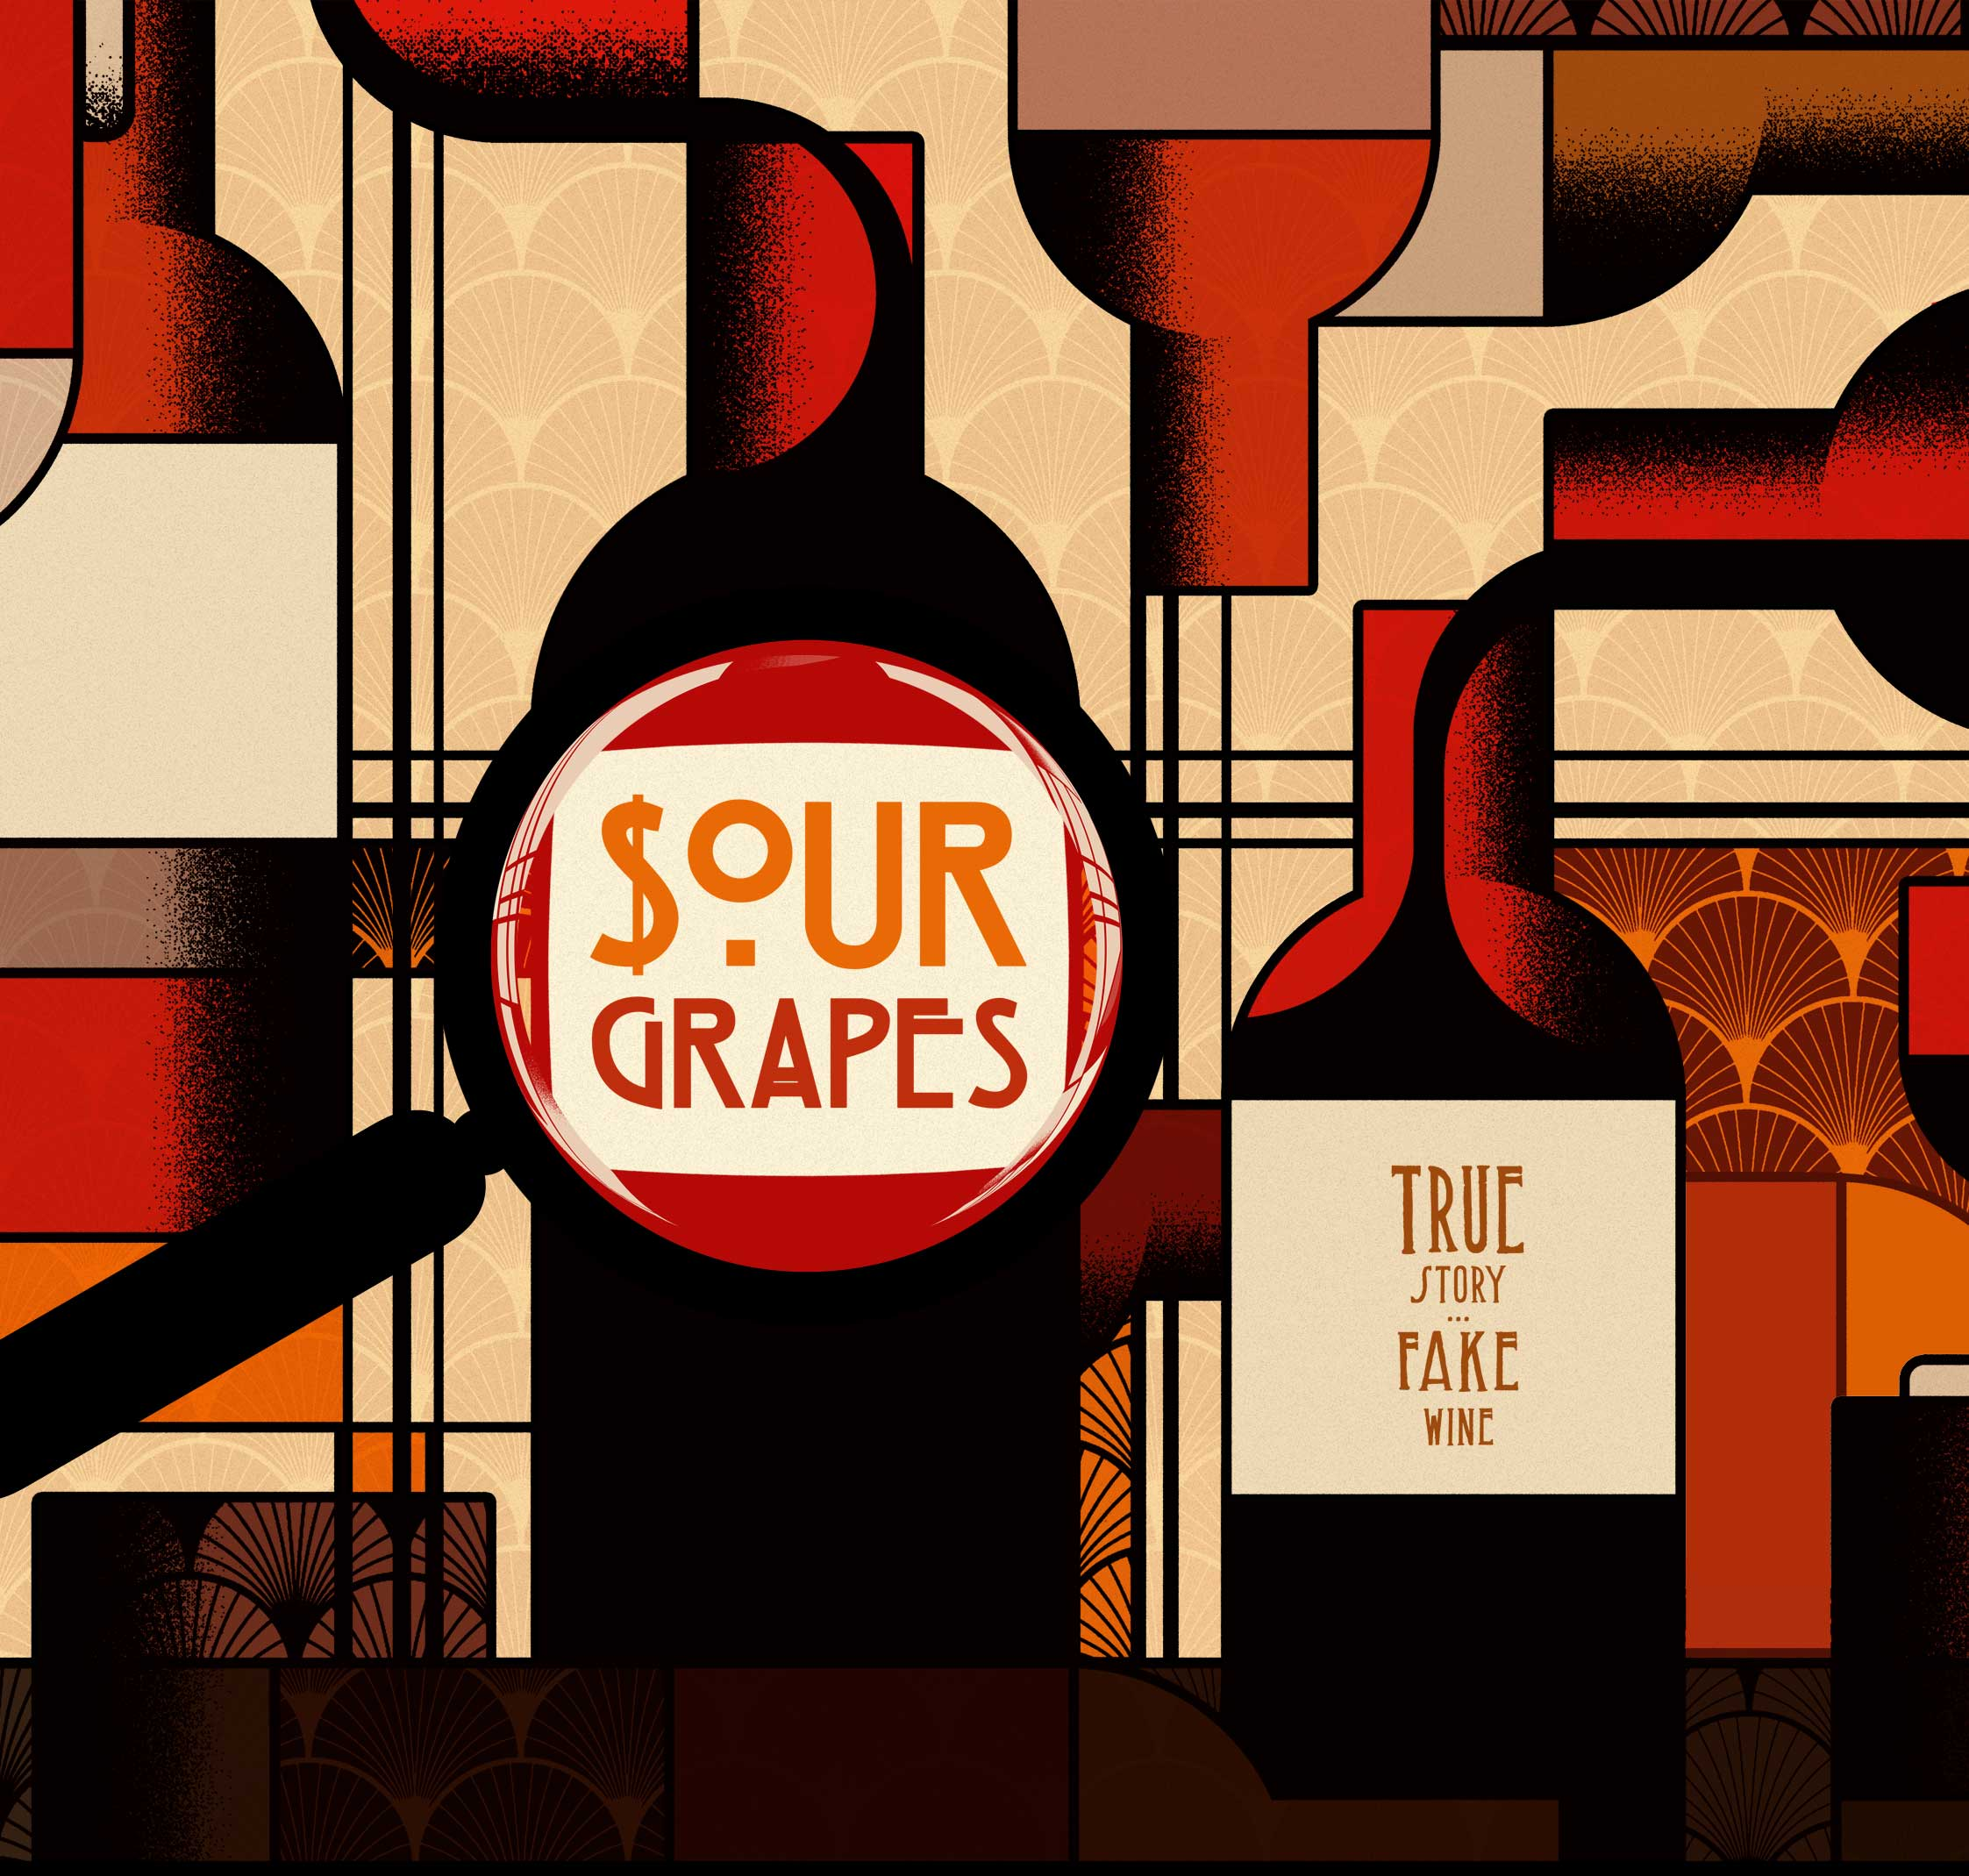 Sour Grapes Stock Photos, Royalty-Free Images & Vectors - Shutterstock